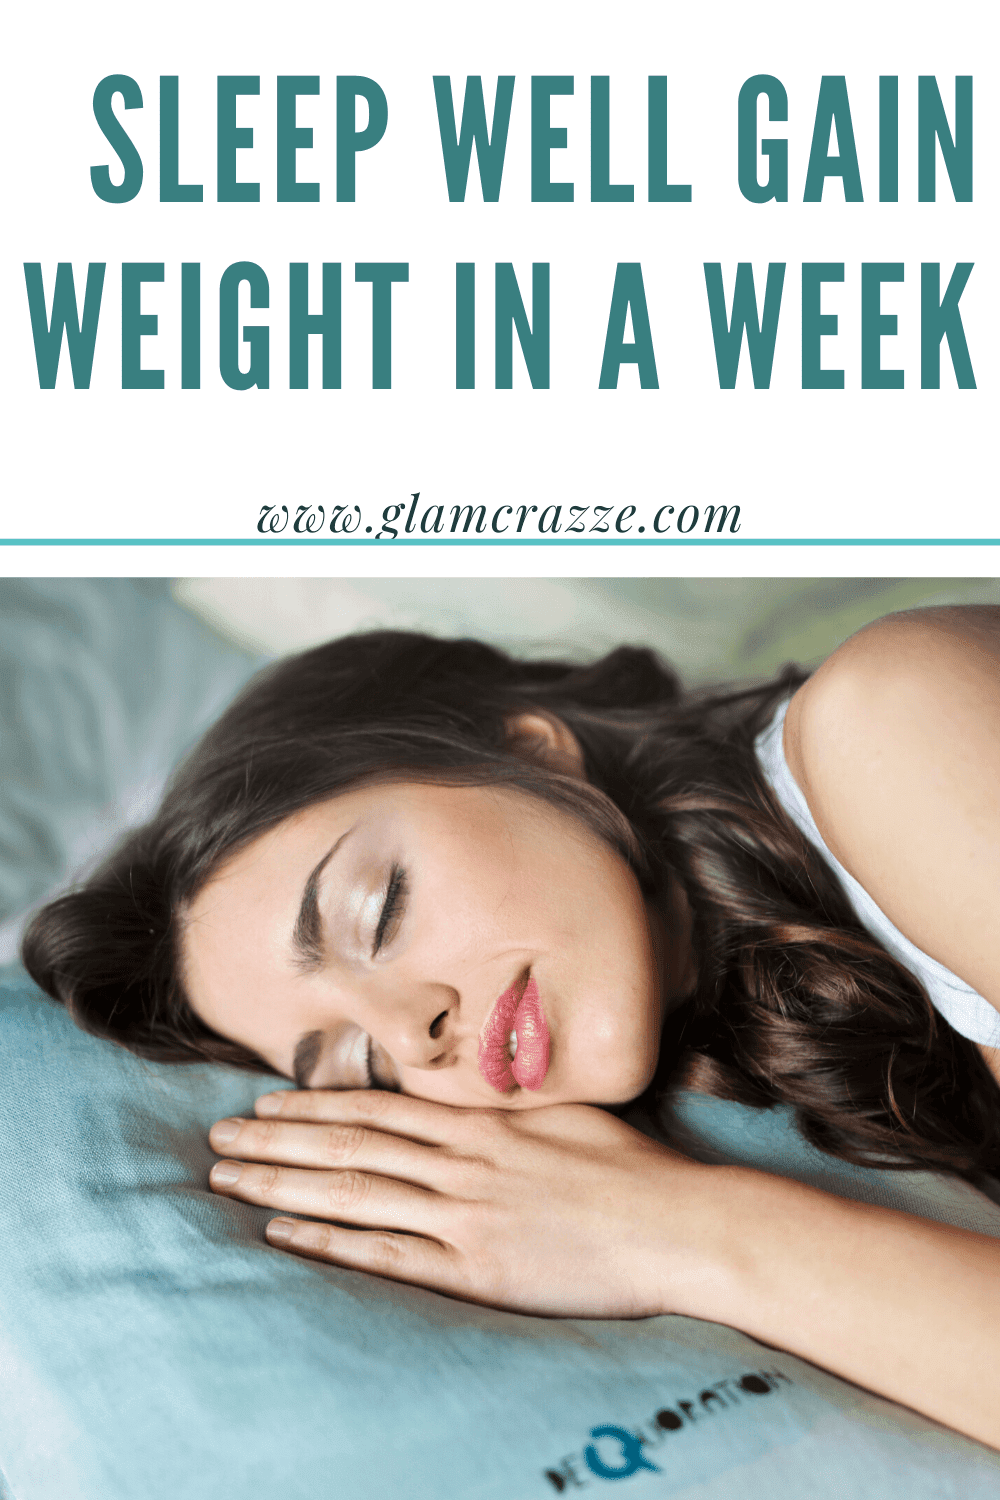 How to gain weight in a week you need to sleep well